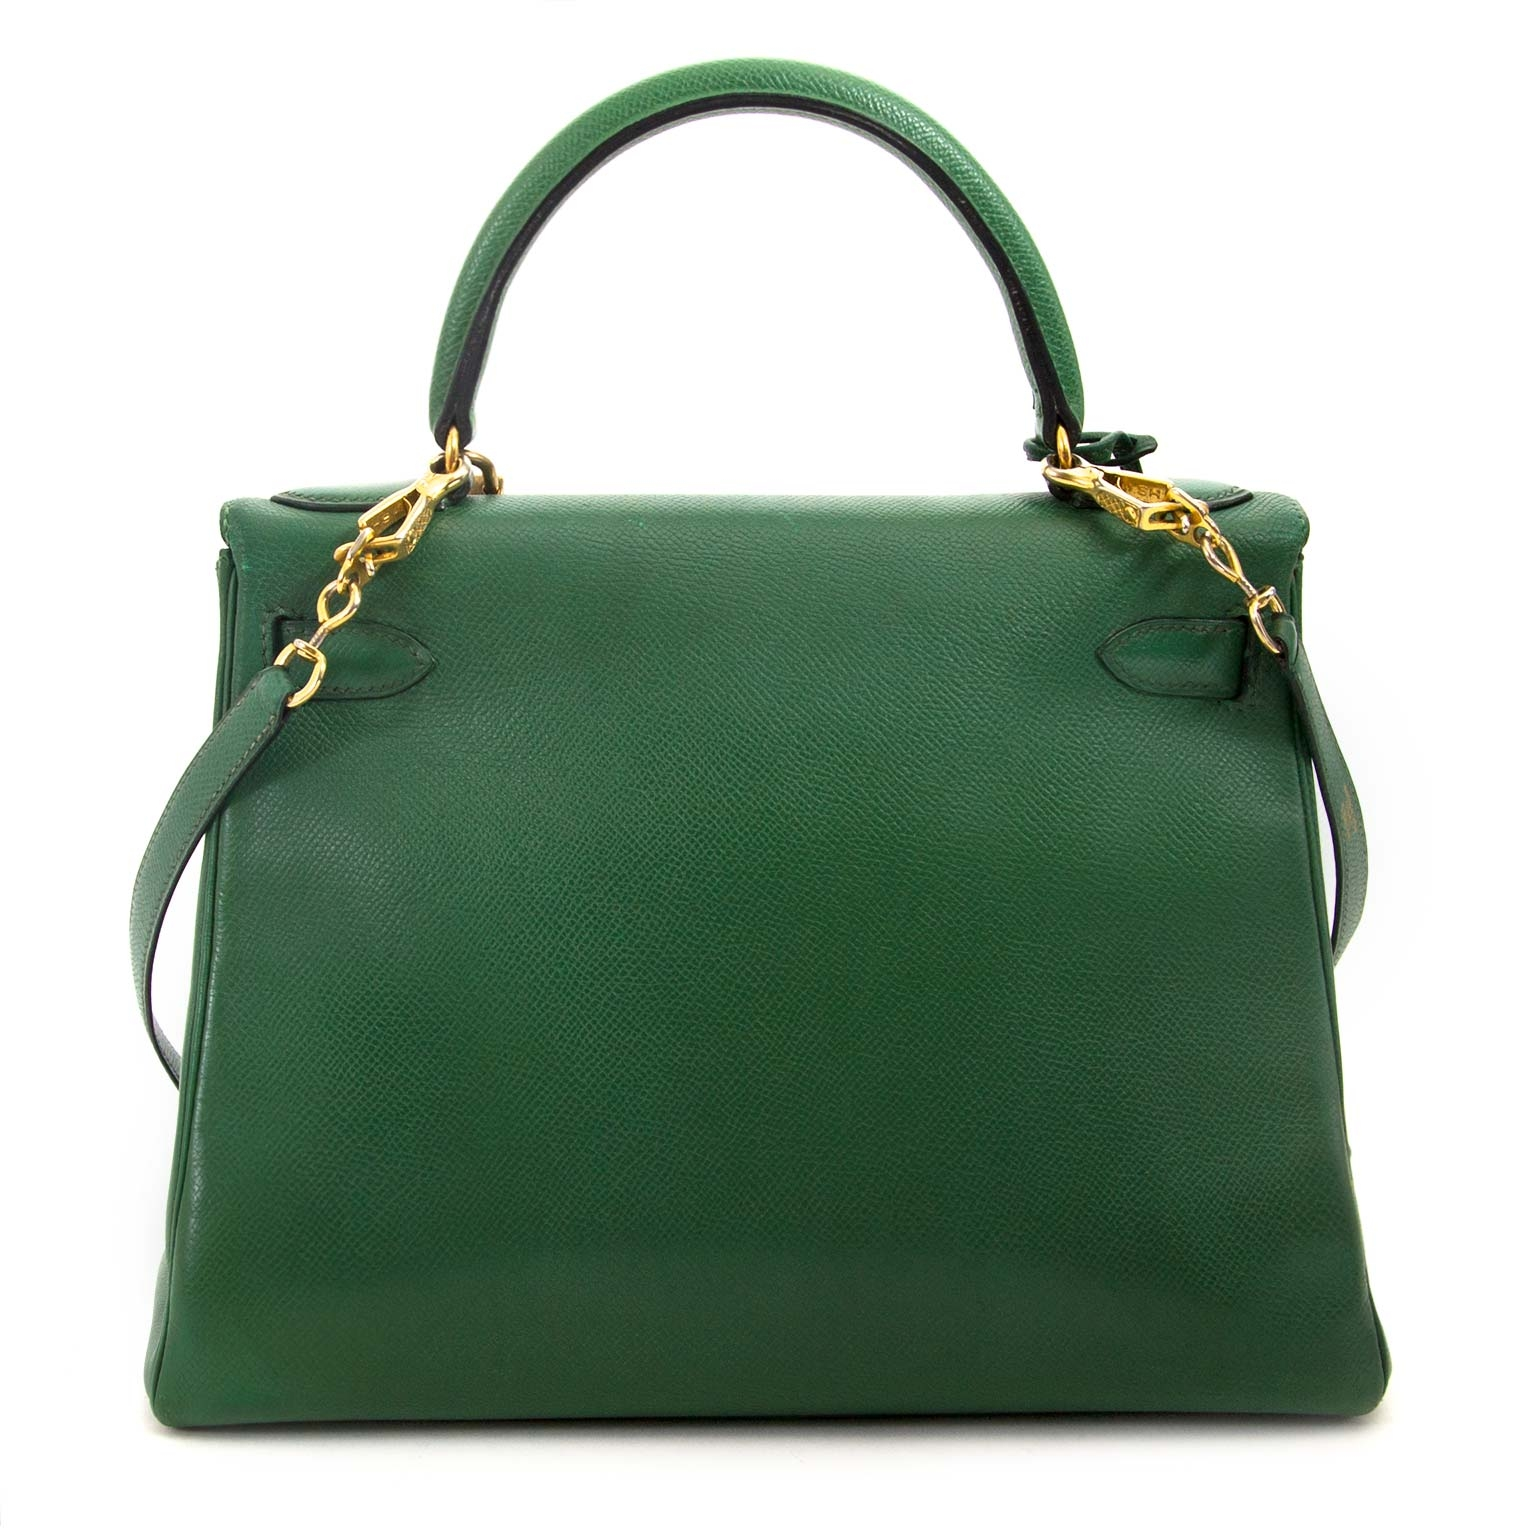 It-bag of 2018 now available immediately at Labellov: Hermès Kelly 28 Vert Bengal Courchevel GHW for sale